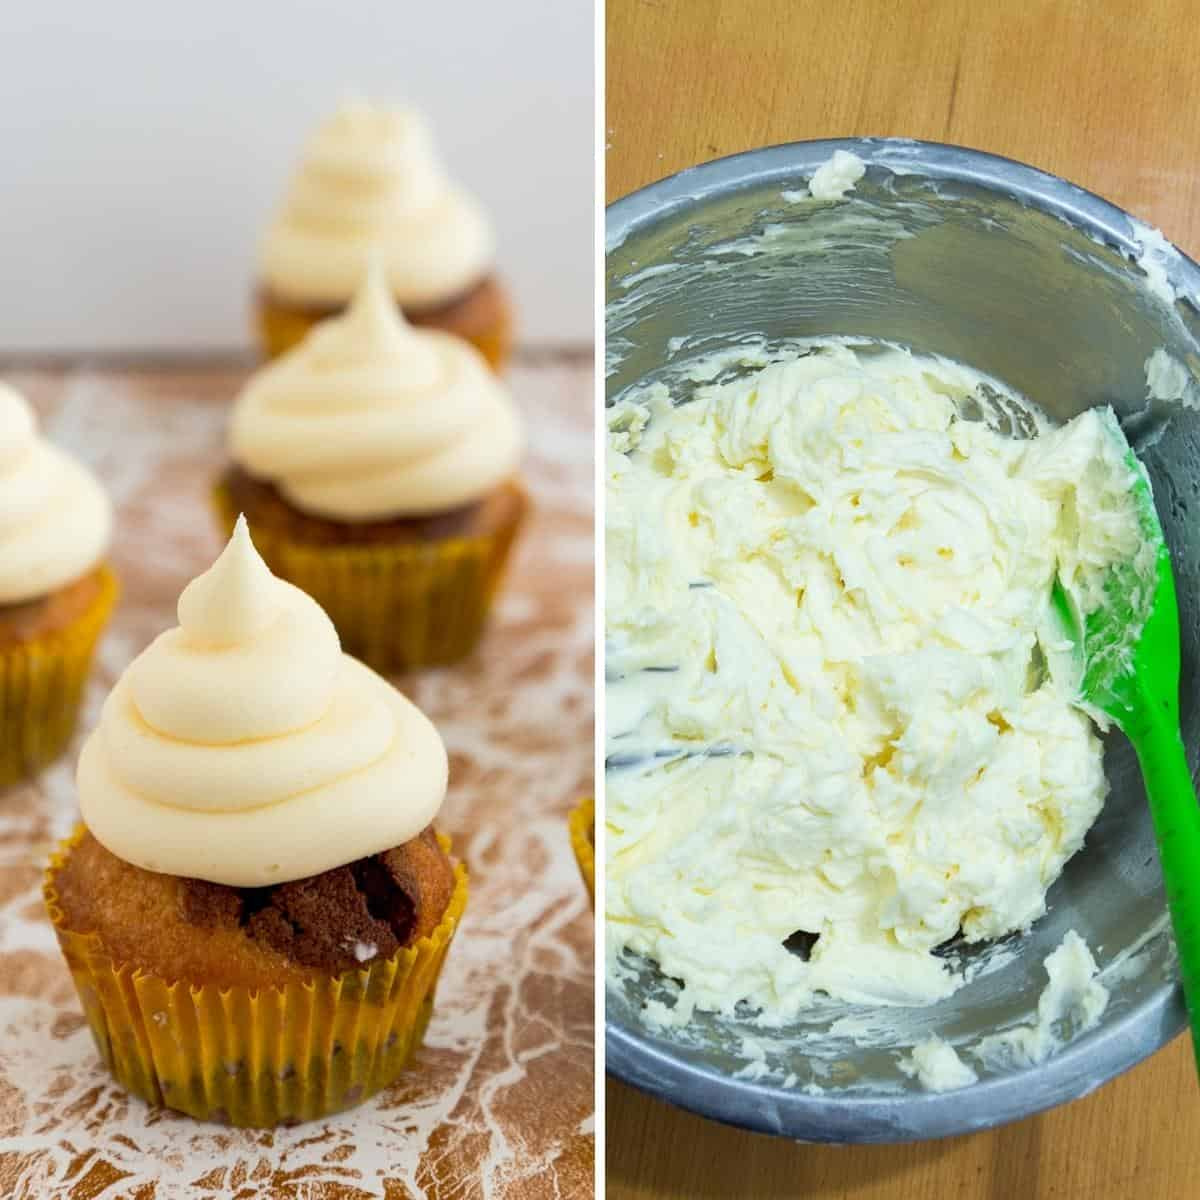 German frosting in a bowl and cupcakes.